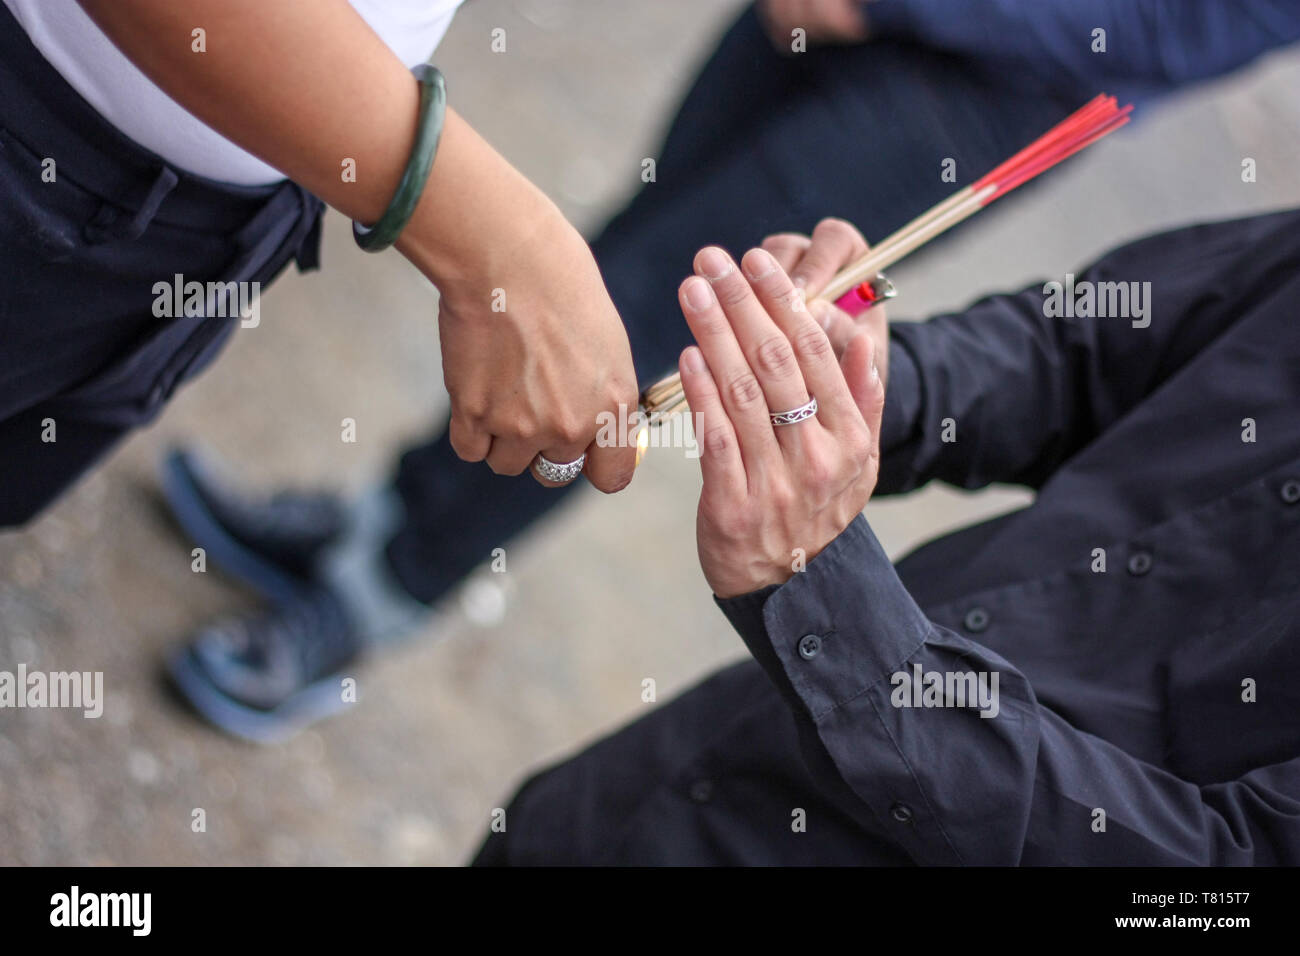 Incense in one man hand are fired by lighter on another man hand. - Stock Image